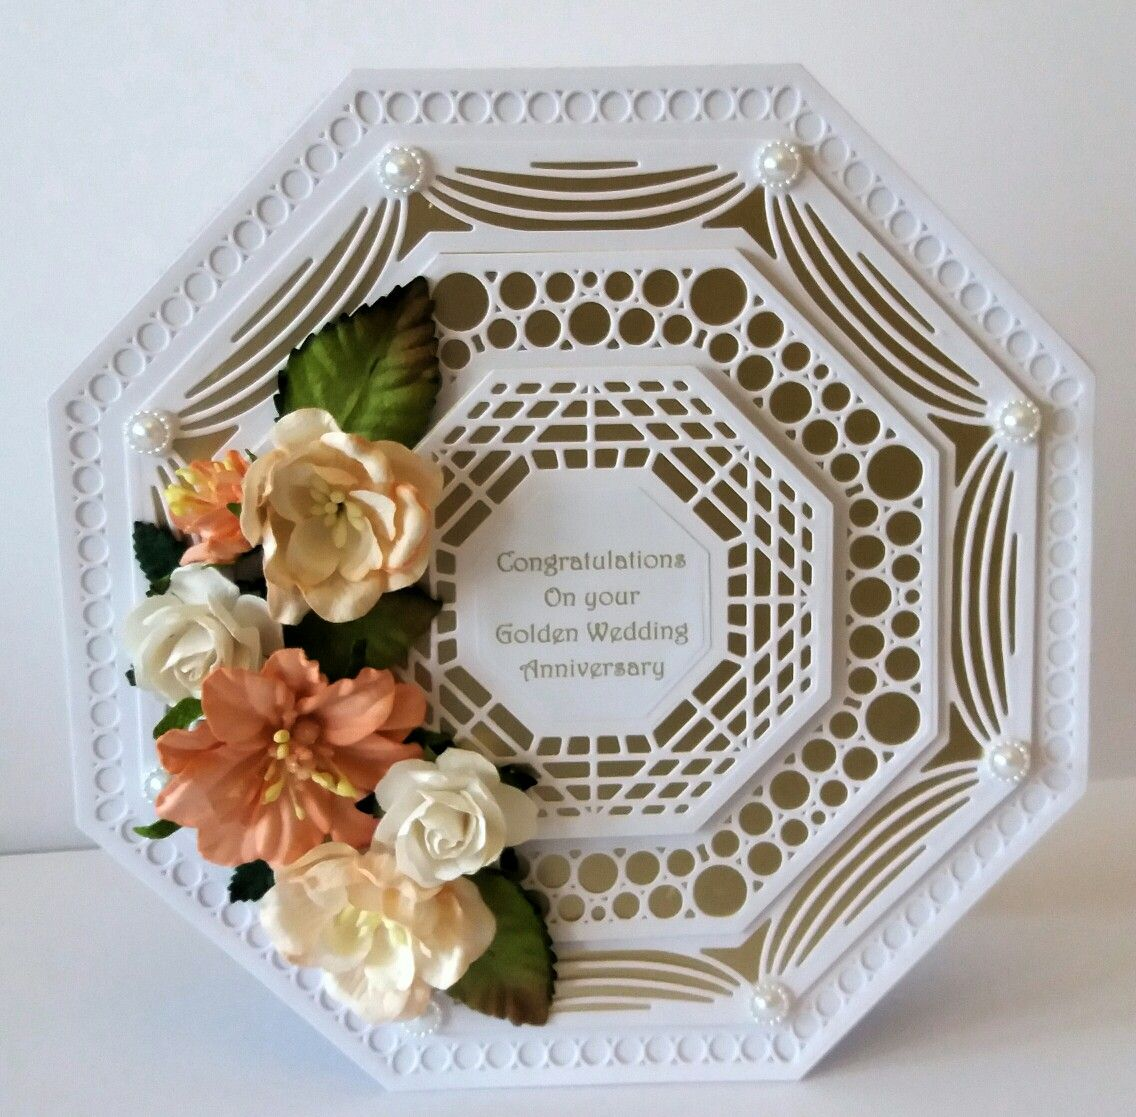 Golden Wedding Anniversary Card Is Approximately 8x8 Base And